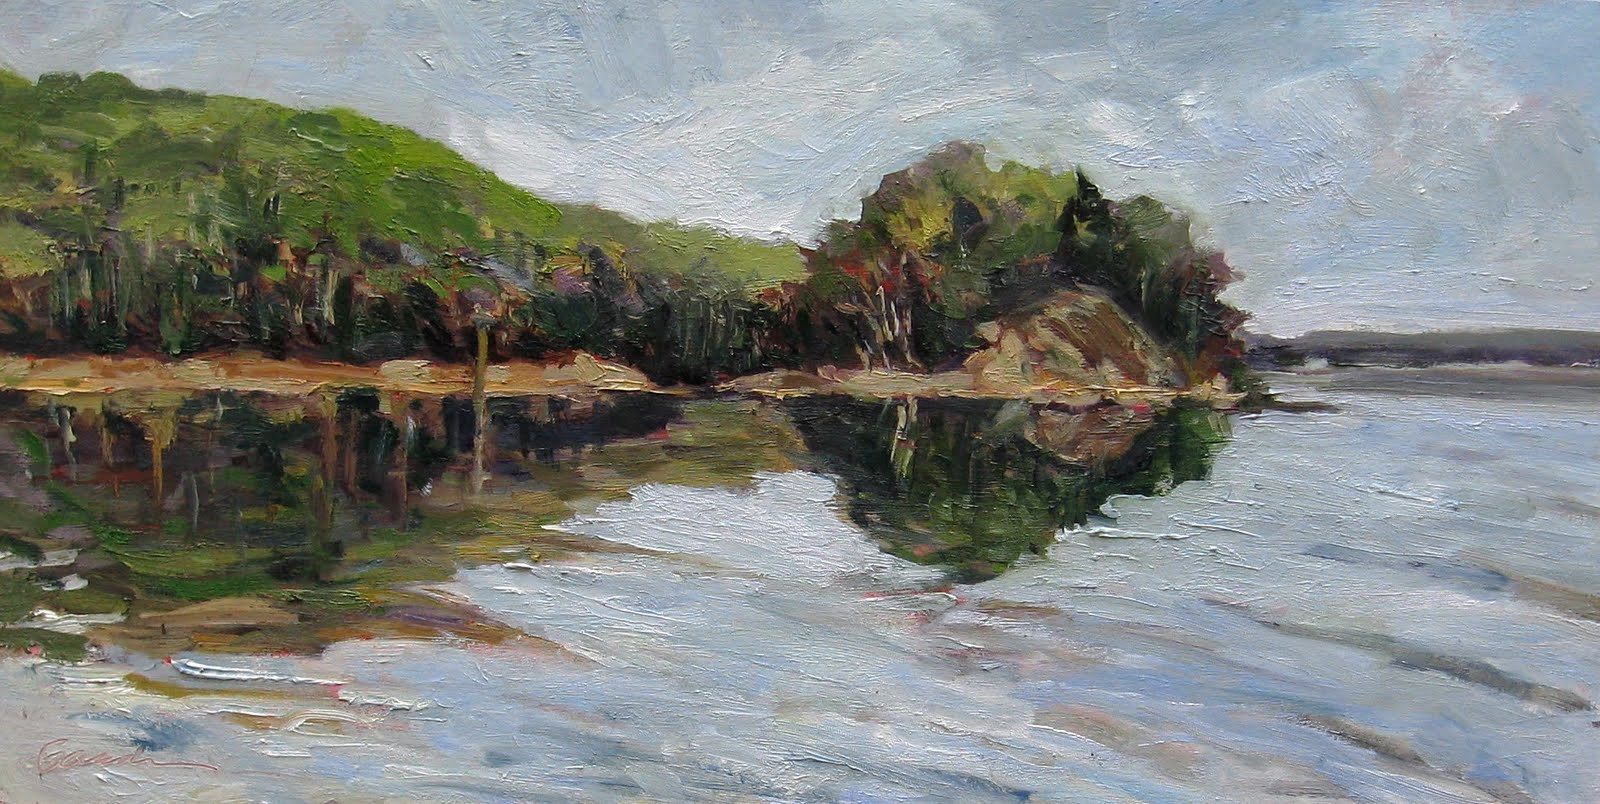 Oil painting Michael Gaudreau The Peninsula  12x24in by Michael Gaudreau